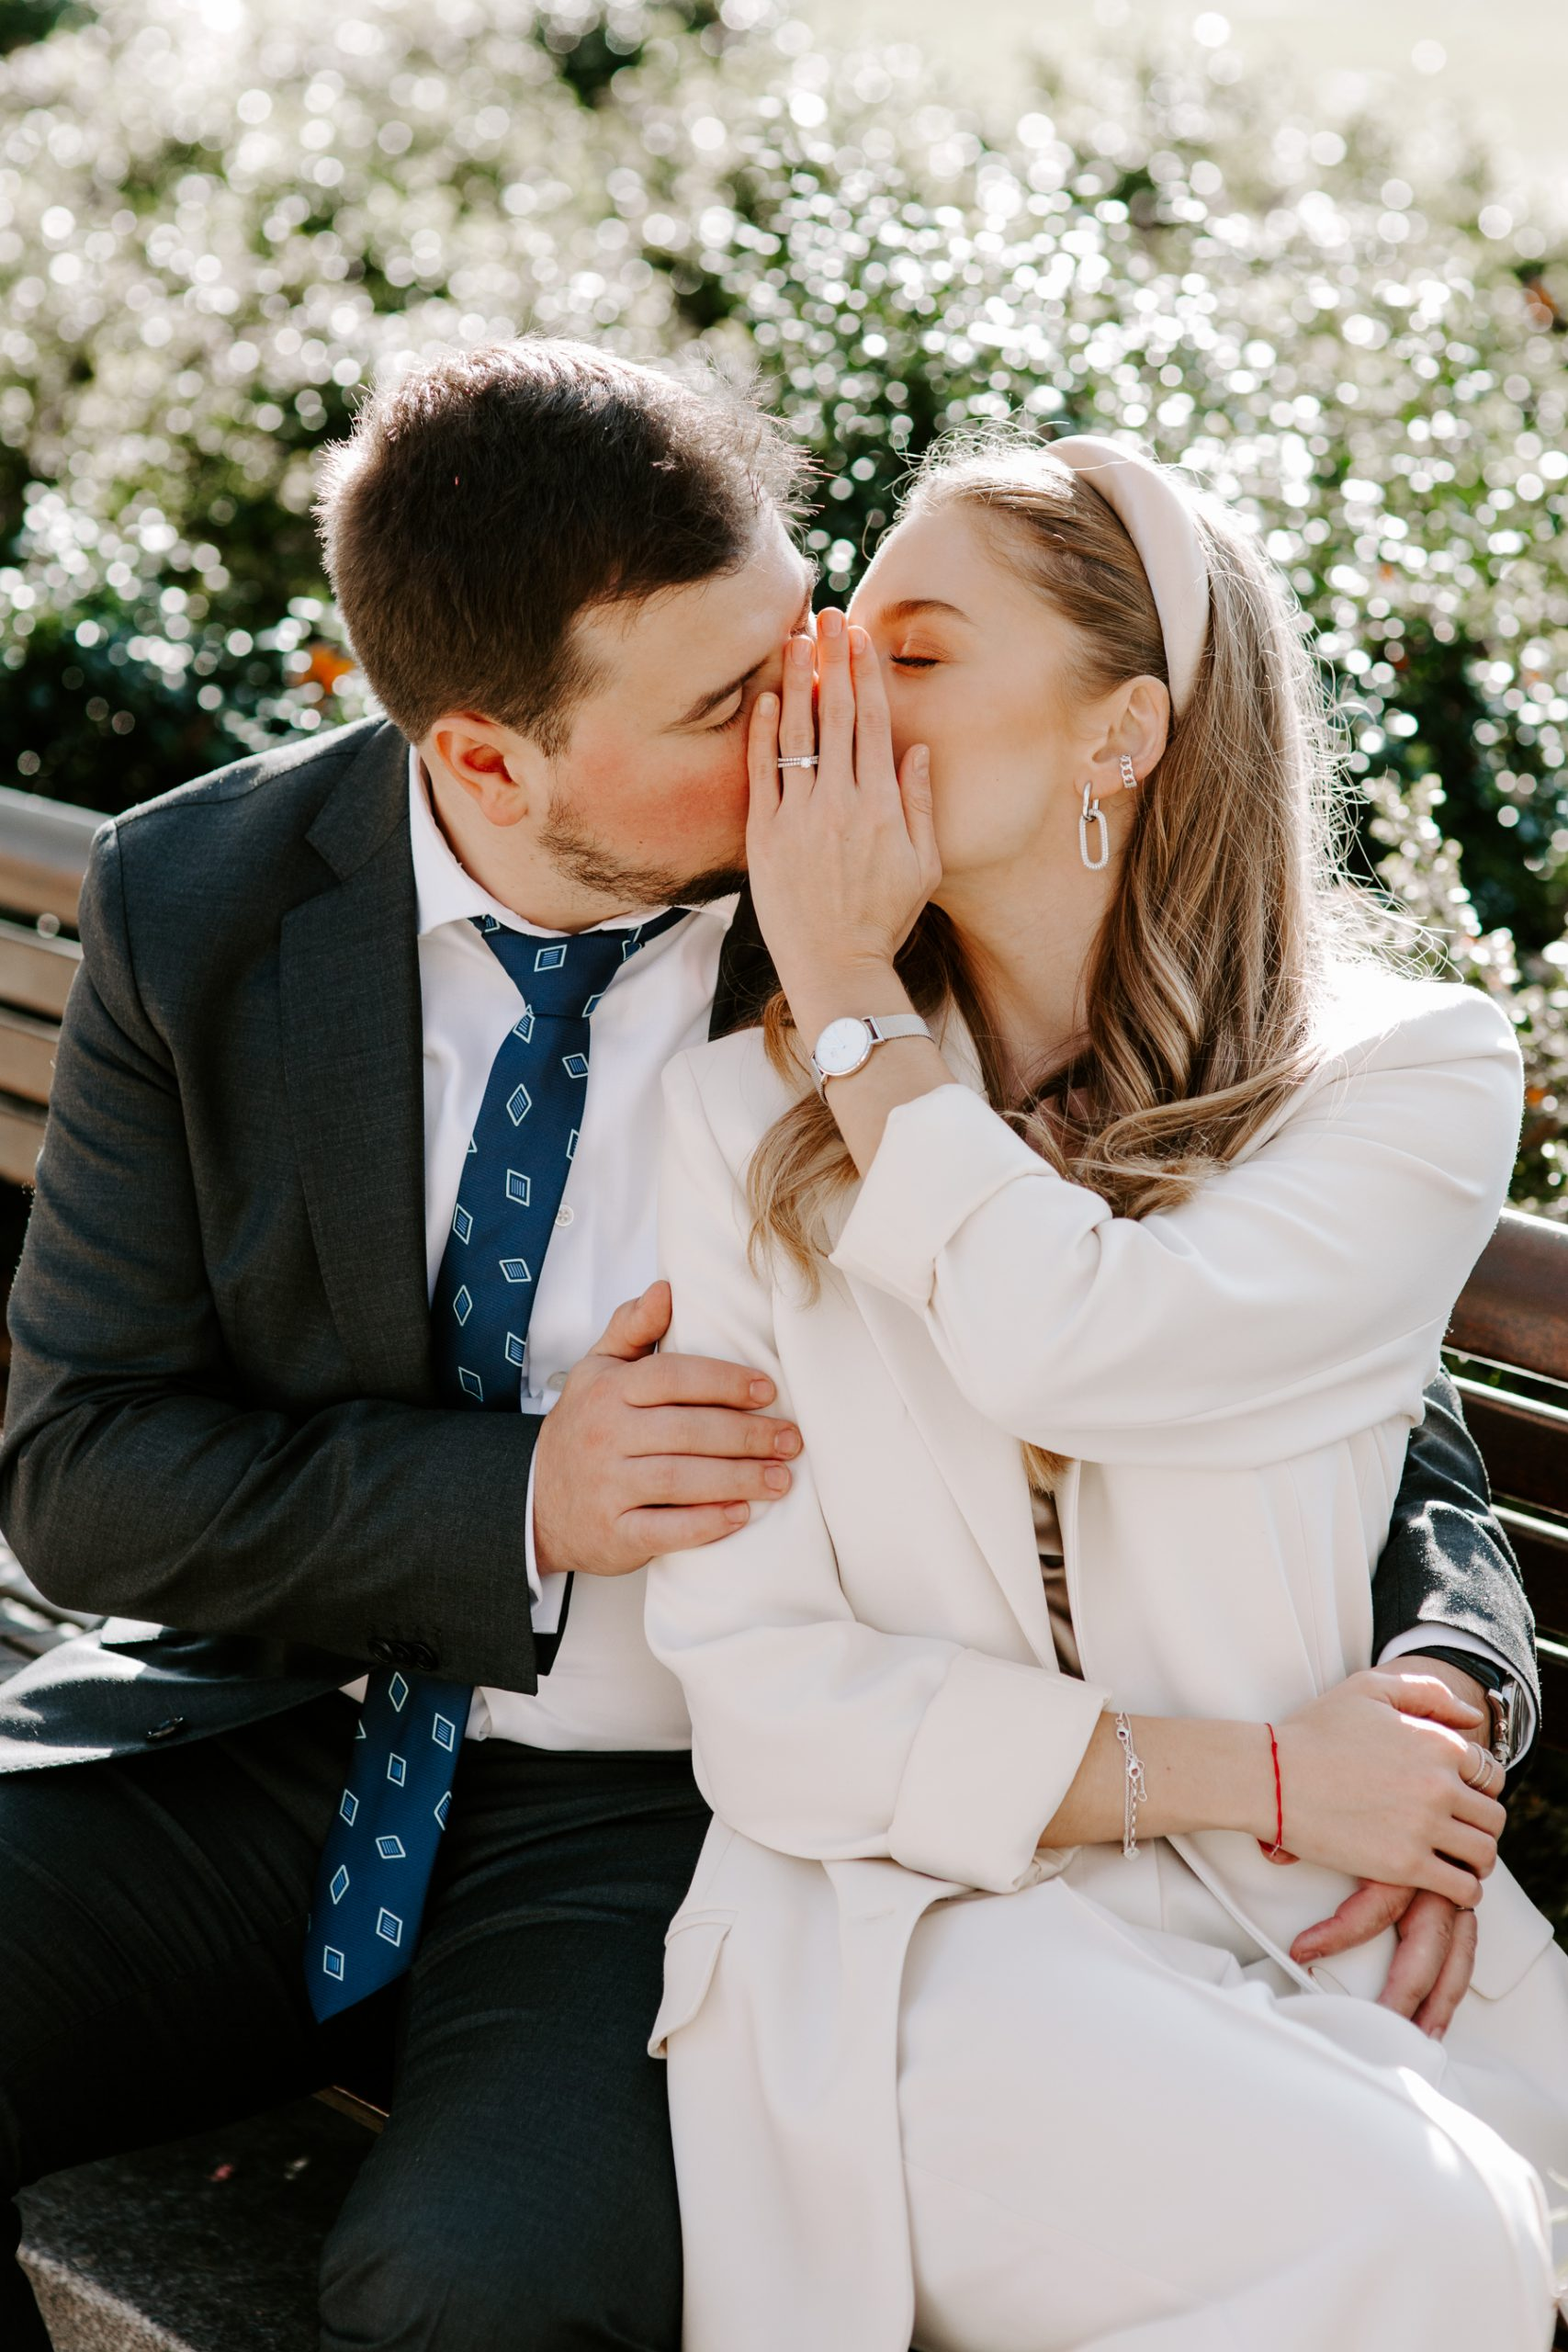 Bride and Groom kissing and hiding their face with hand to show wedding ring